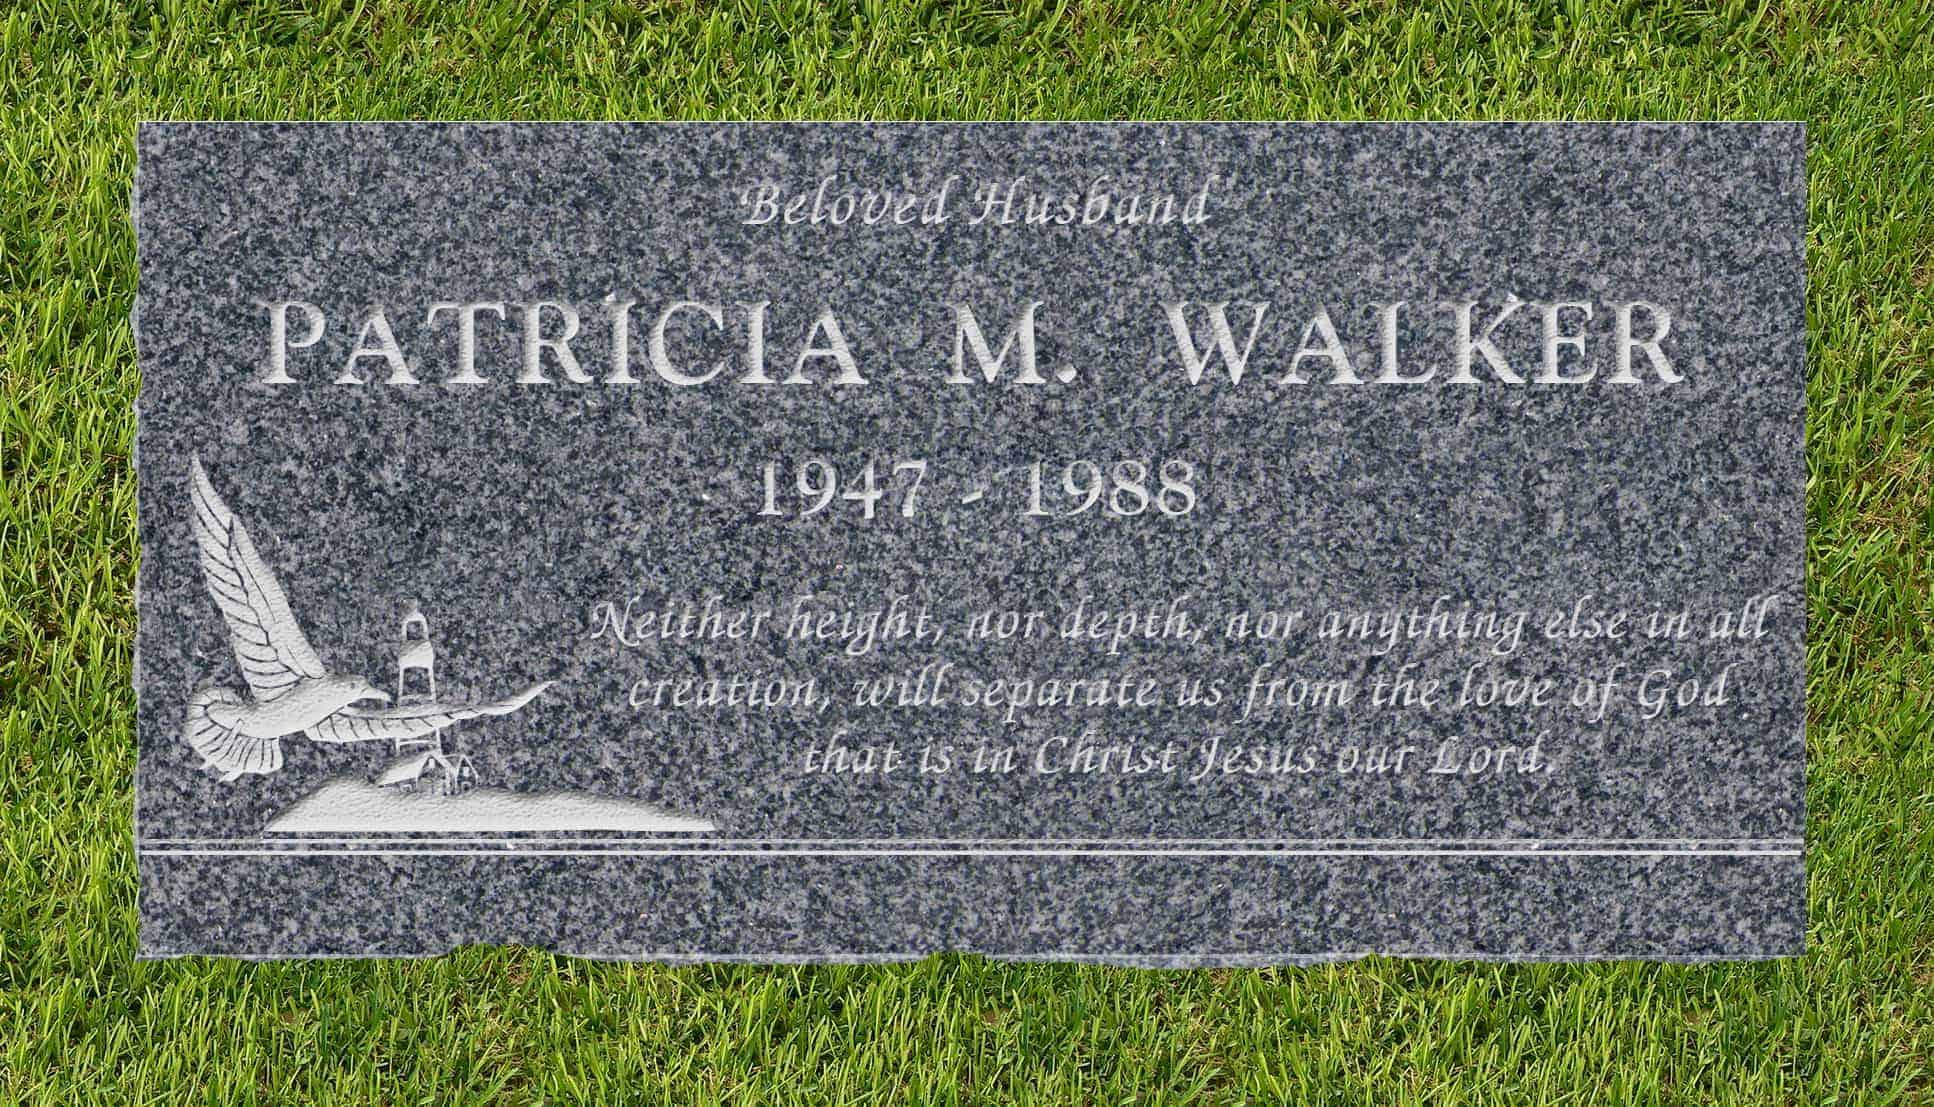 24inch_x_12inch_x_3inch_Flat_Granite_Headstone_in_Imperial_Gray_with_design_S-1_installed_in_ground